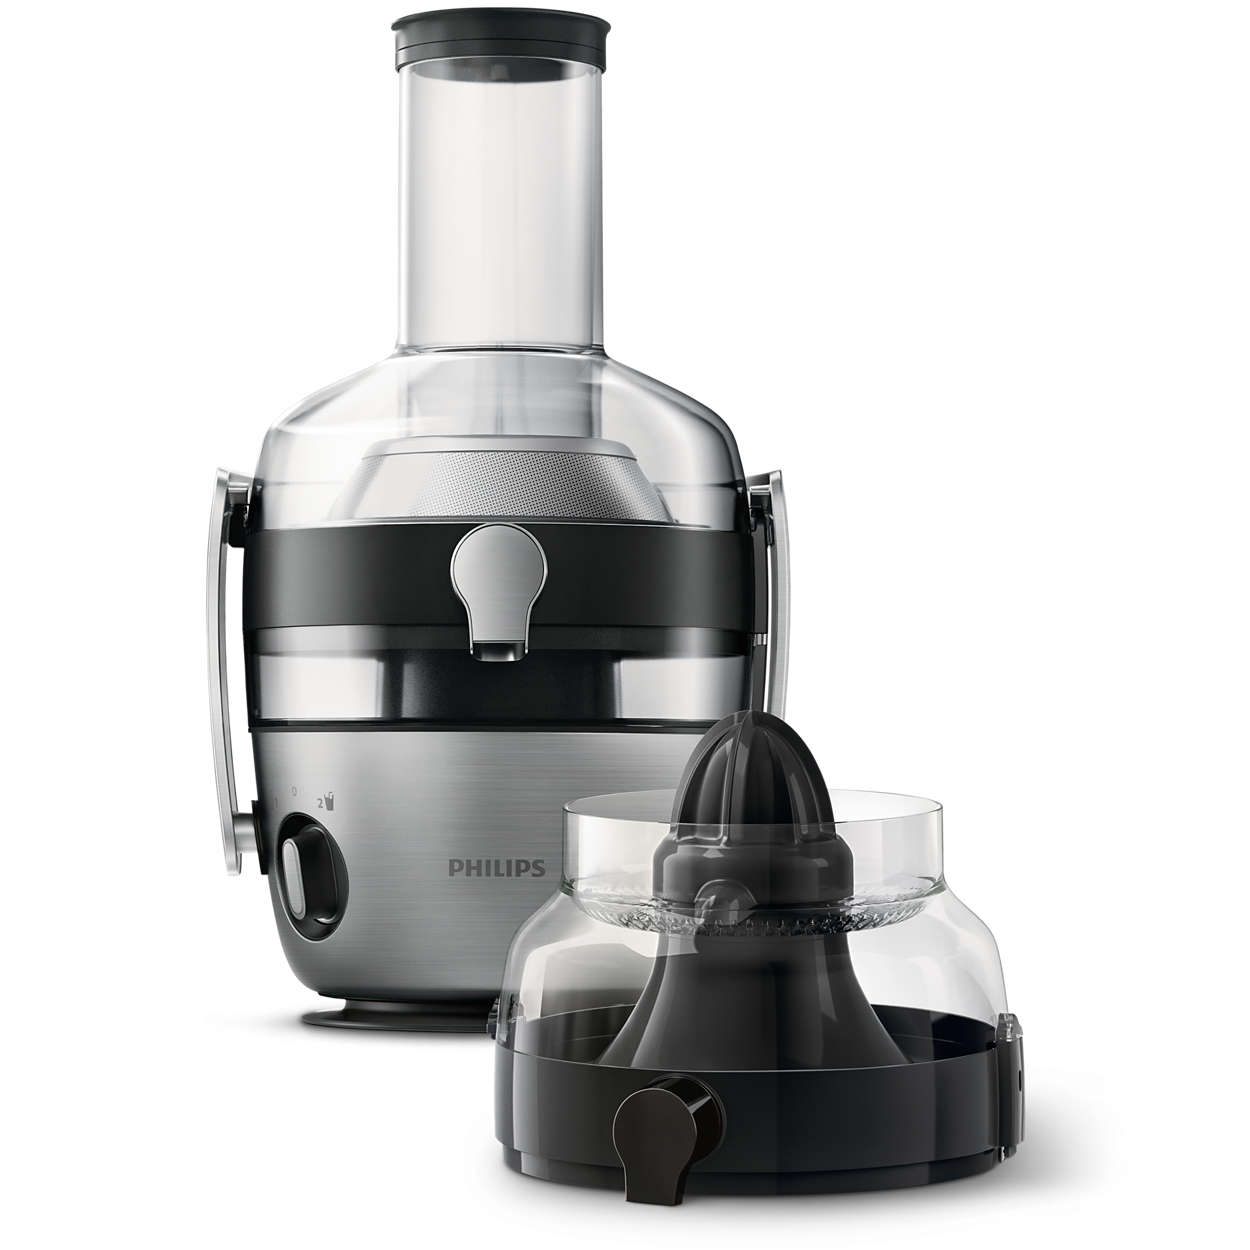 Slow Juicer No Fiber : Avance Collection Juicer HR1925/20 Philips